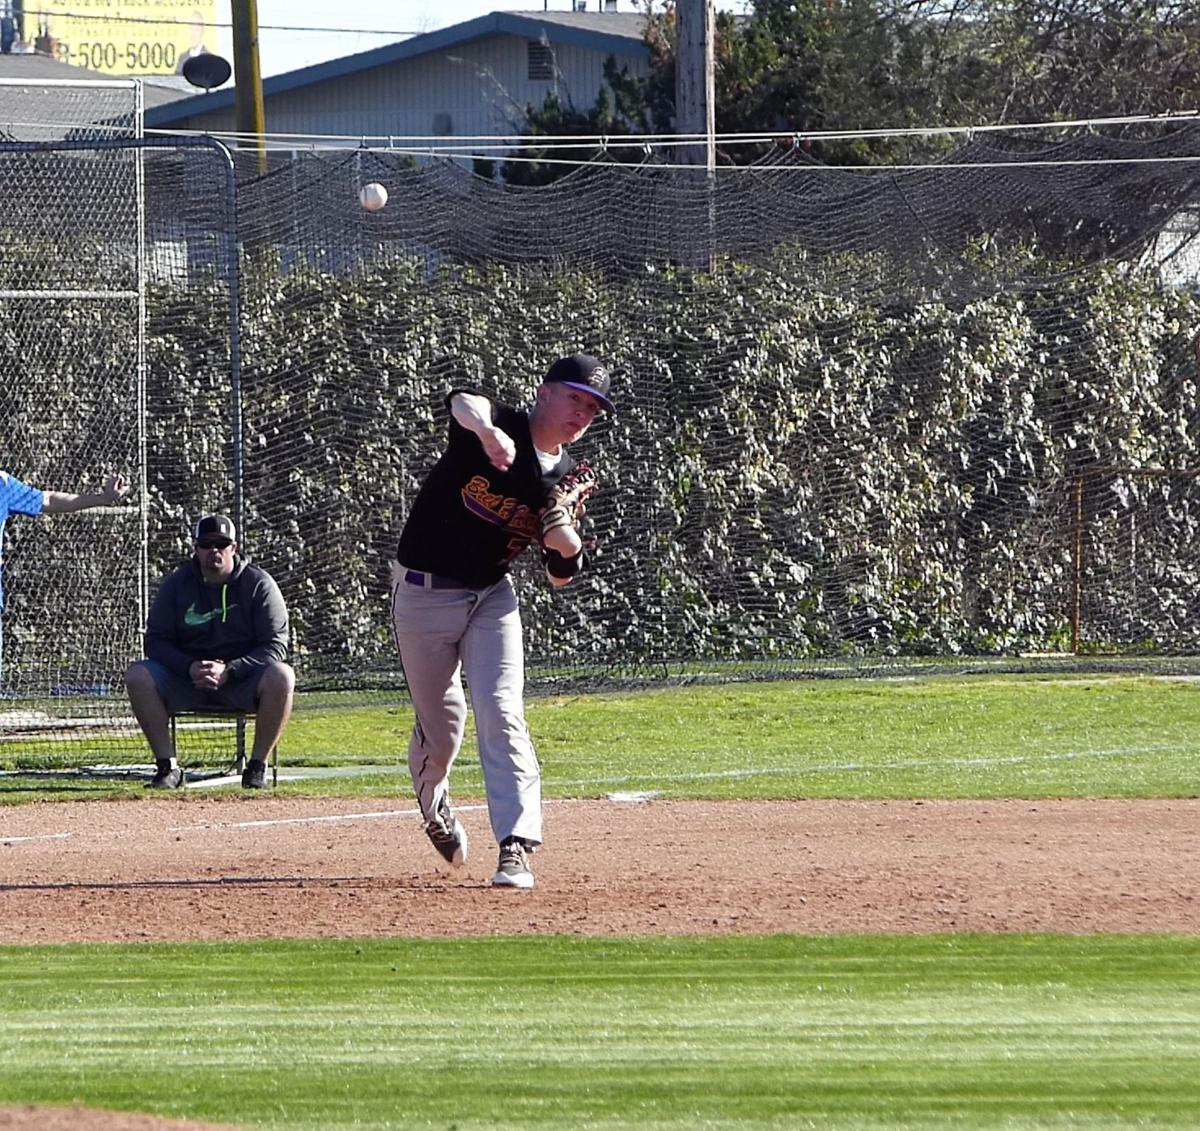 Bakke pitches well in Bret Harte loss